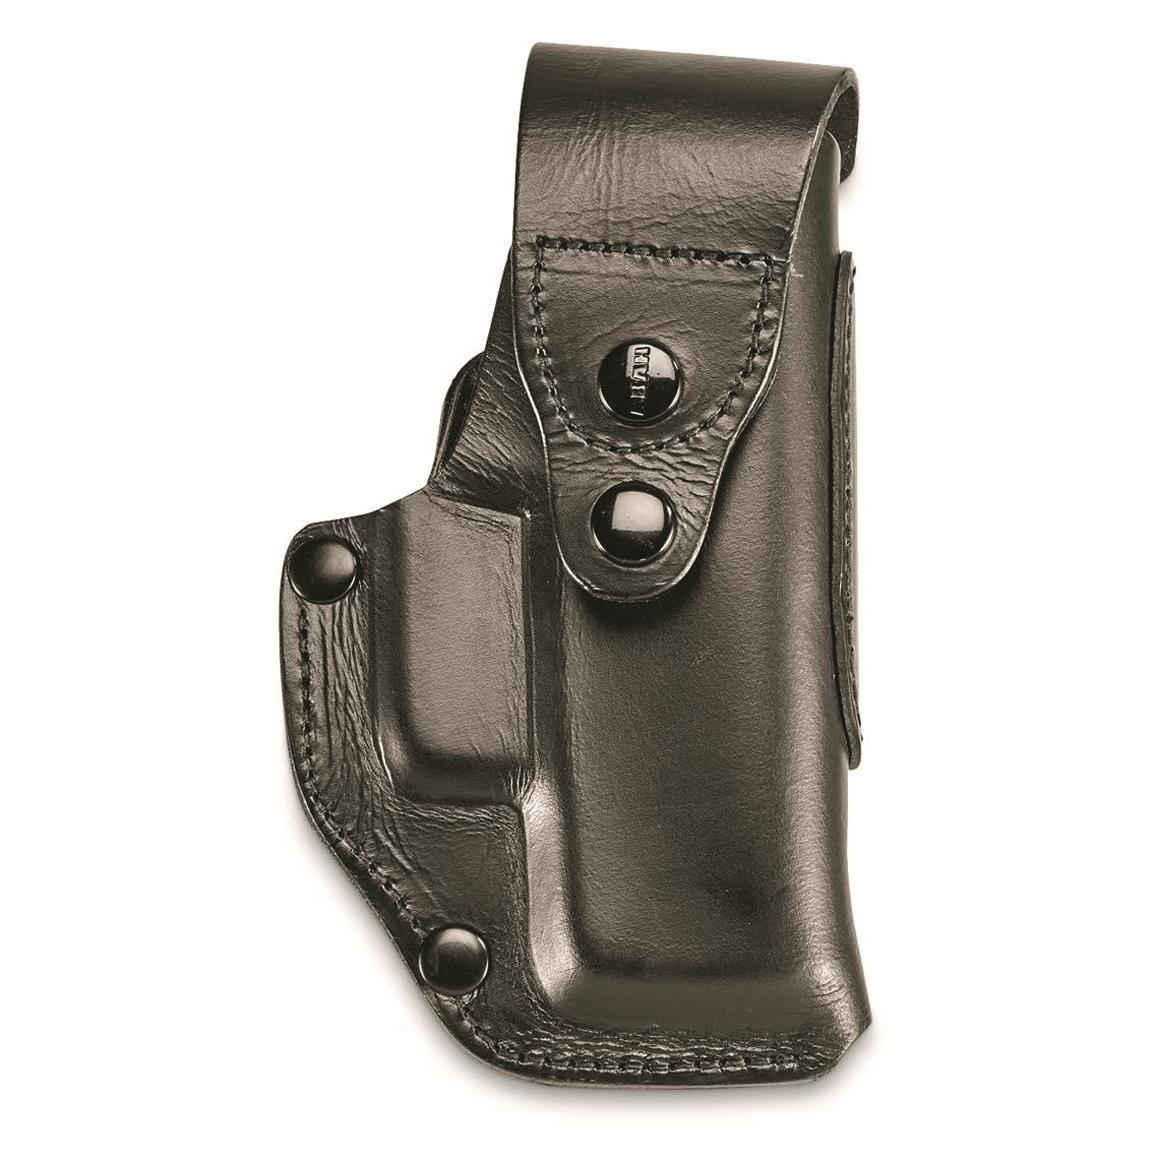 German Police Surplus P5 Leather Compact Holster, Used